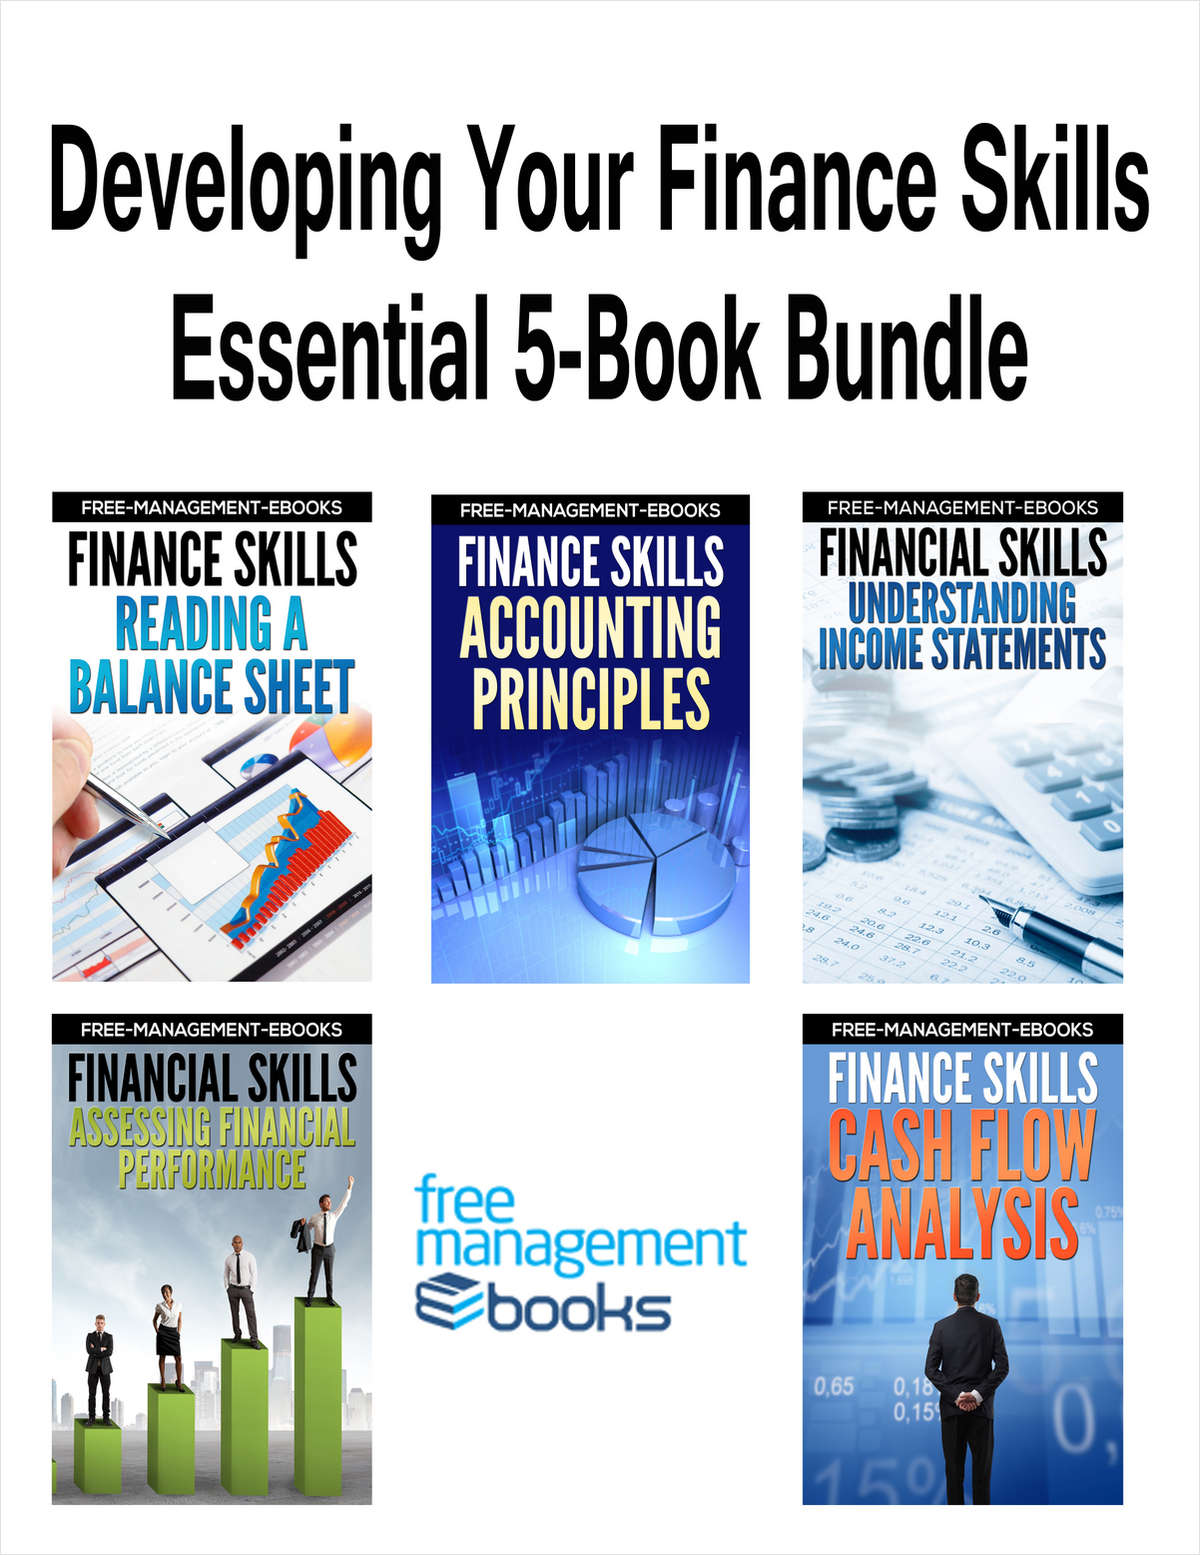 Developing Your Finance Skills - Essential 5-Book Bundle Screenshot